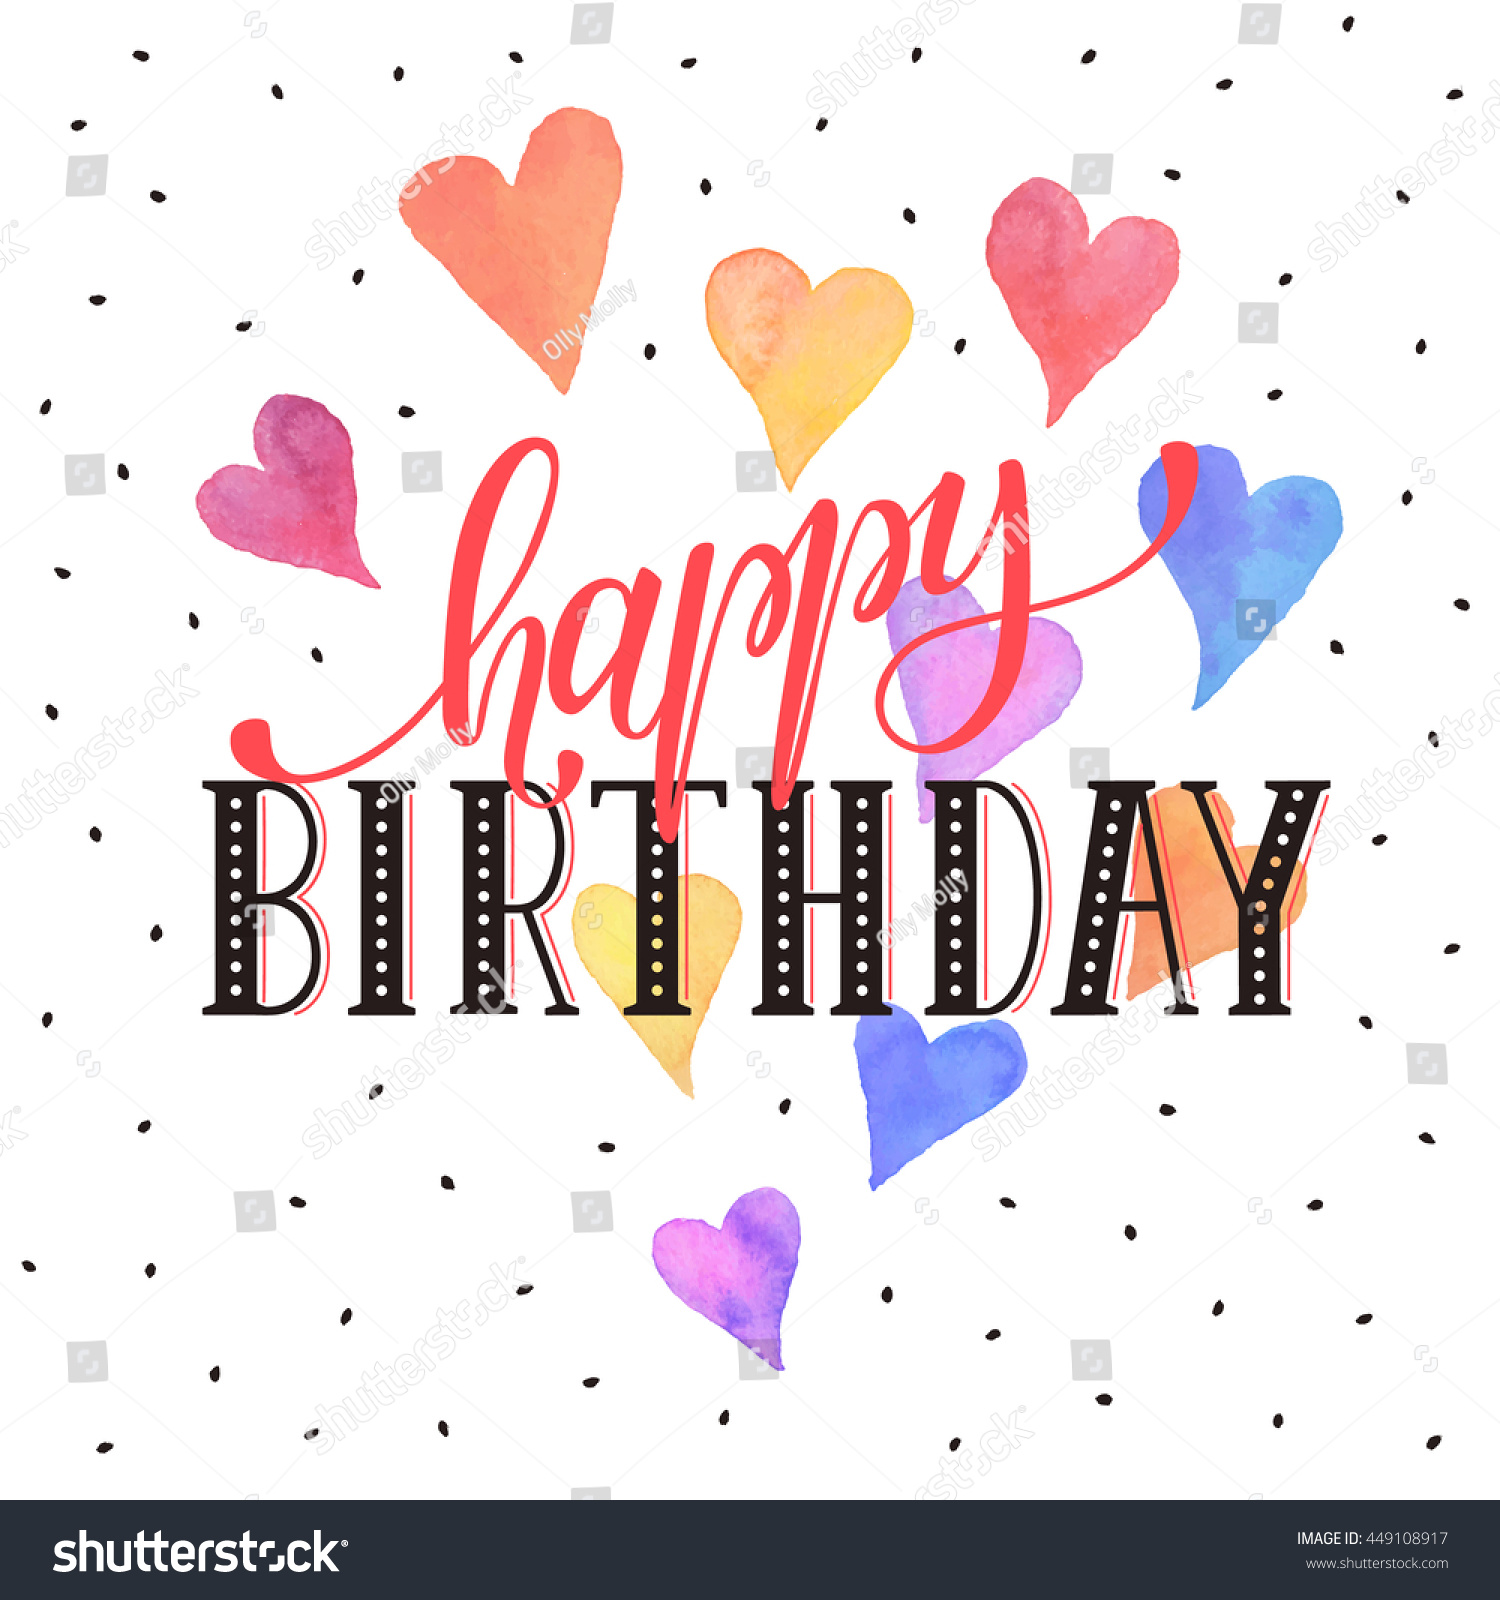 Happy Birthday Greeting Card Colorful Watercolor Stock Vector